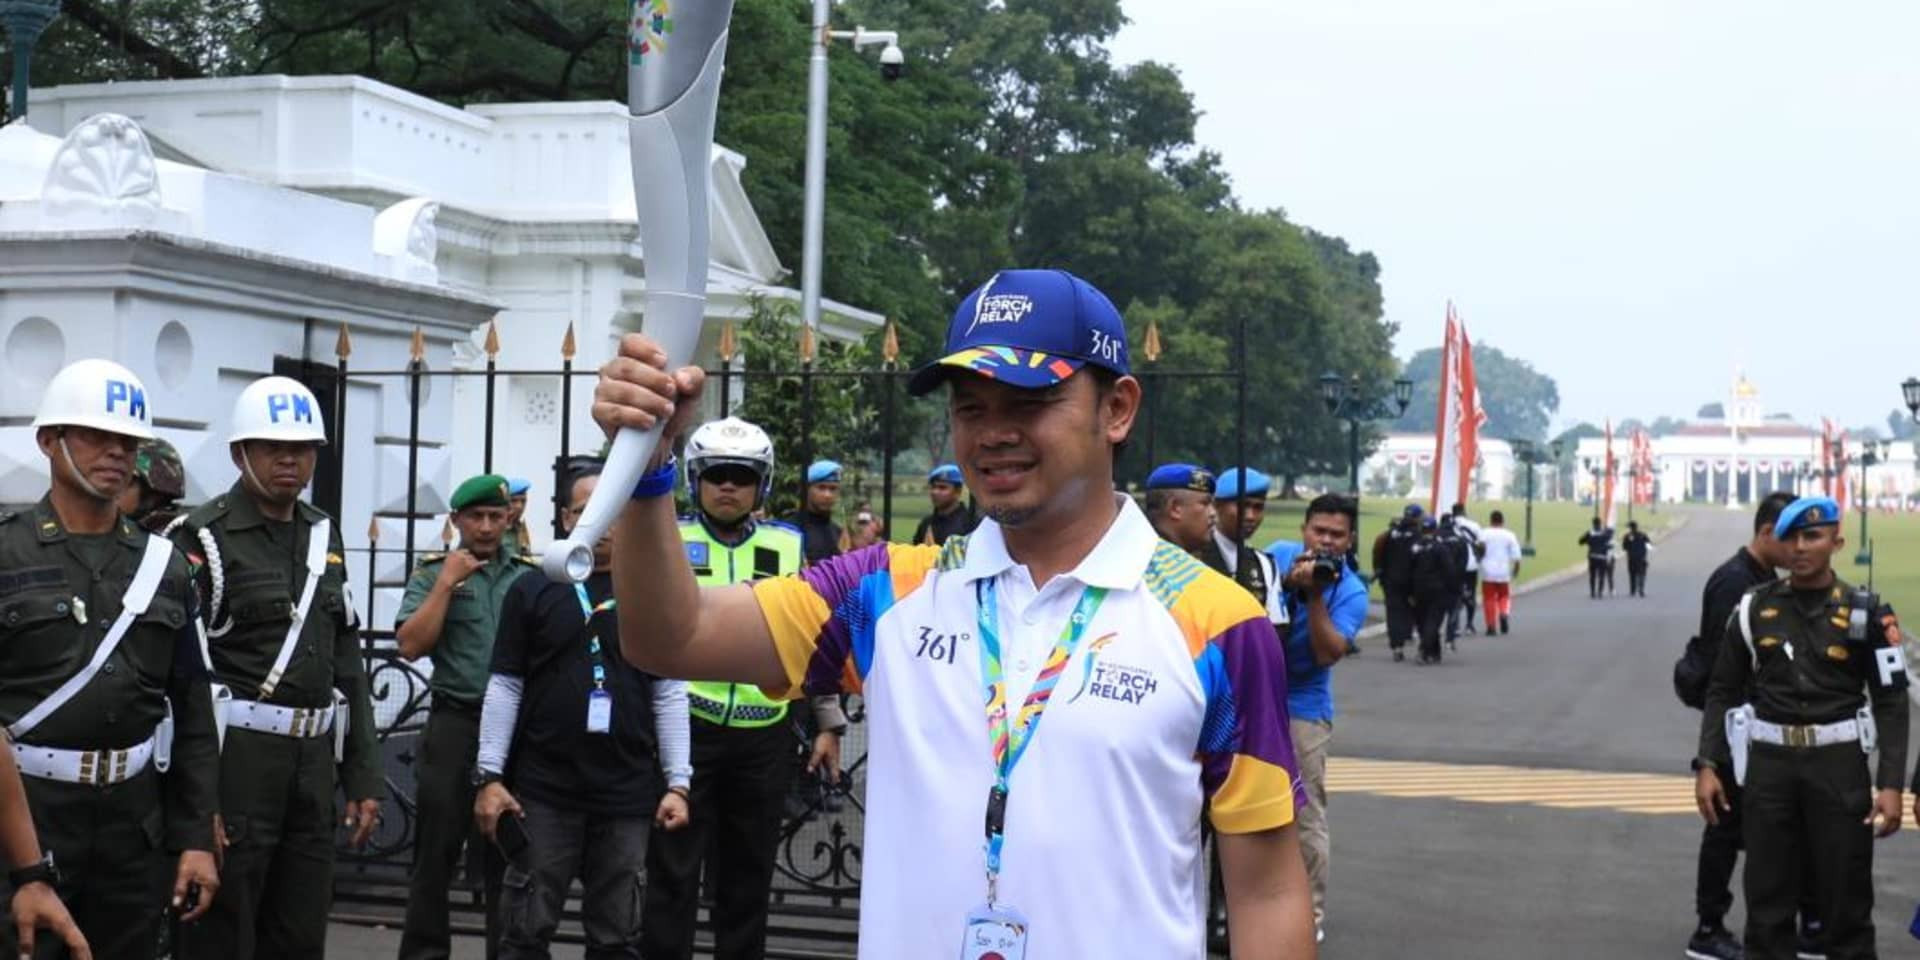 The Torch Relay for the 2018 Asian Games has continued with the flame travelling from Cianjur to Cipanas ©Asian Games 2018